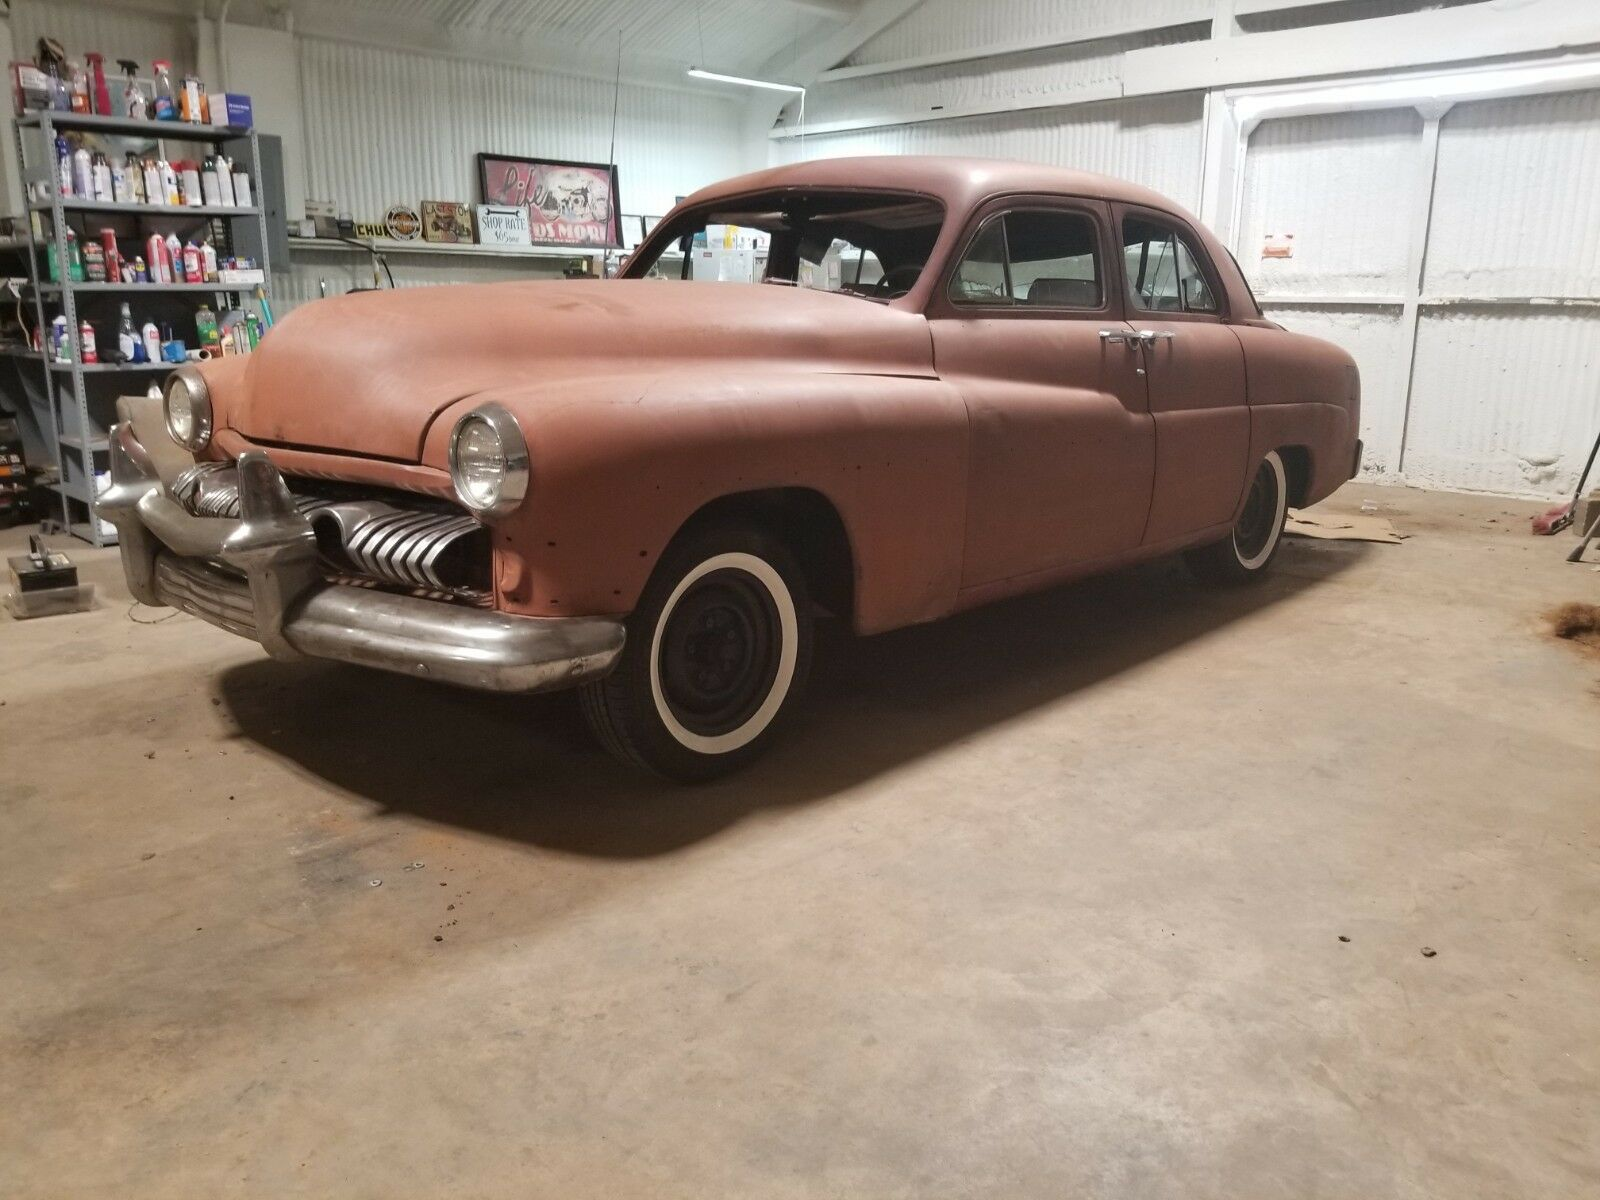 used Mercury Other 1951 vin: 5807292779